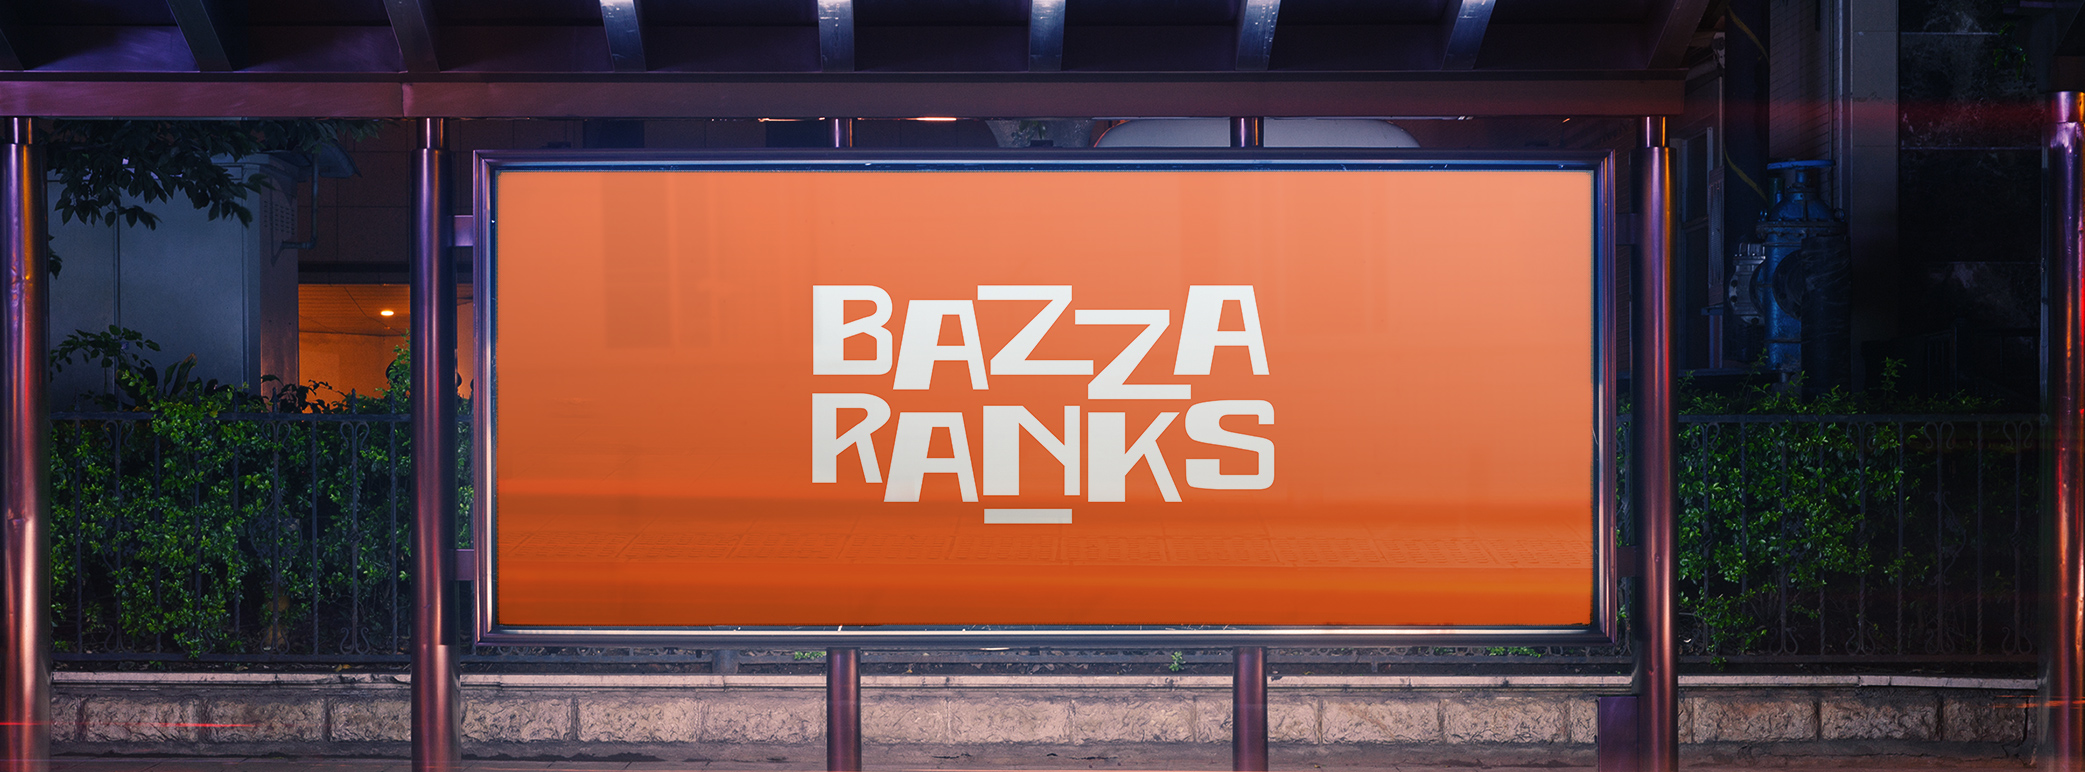 Bazza-Ranks-Billboard-Logo-Mock-hq-01-fb.jpg